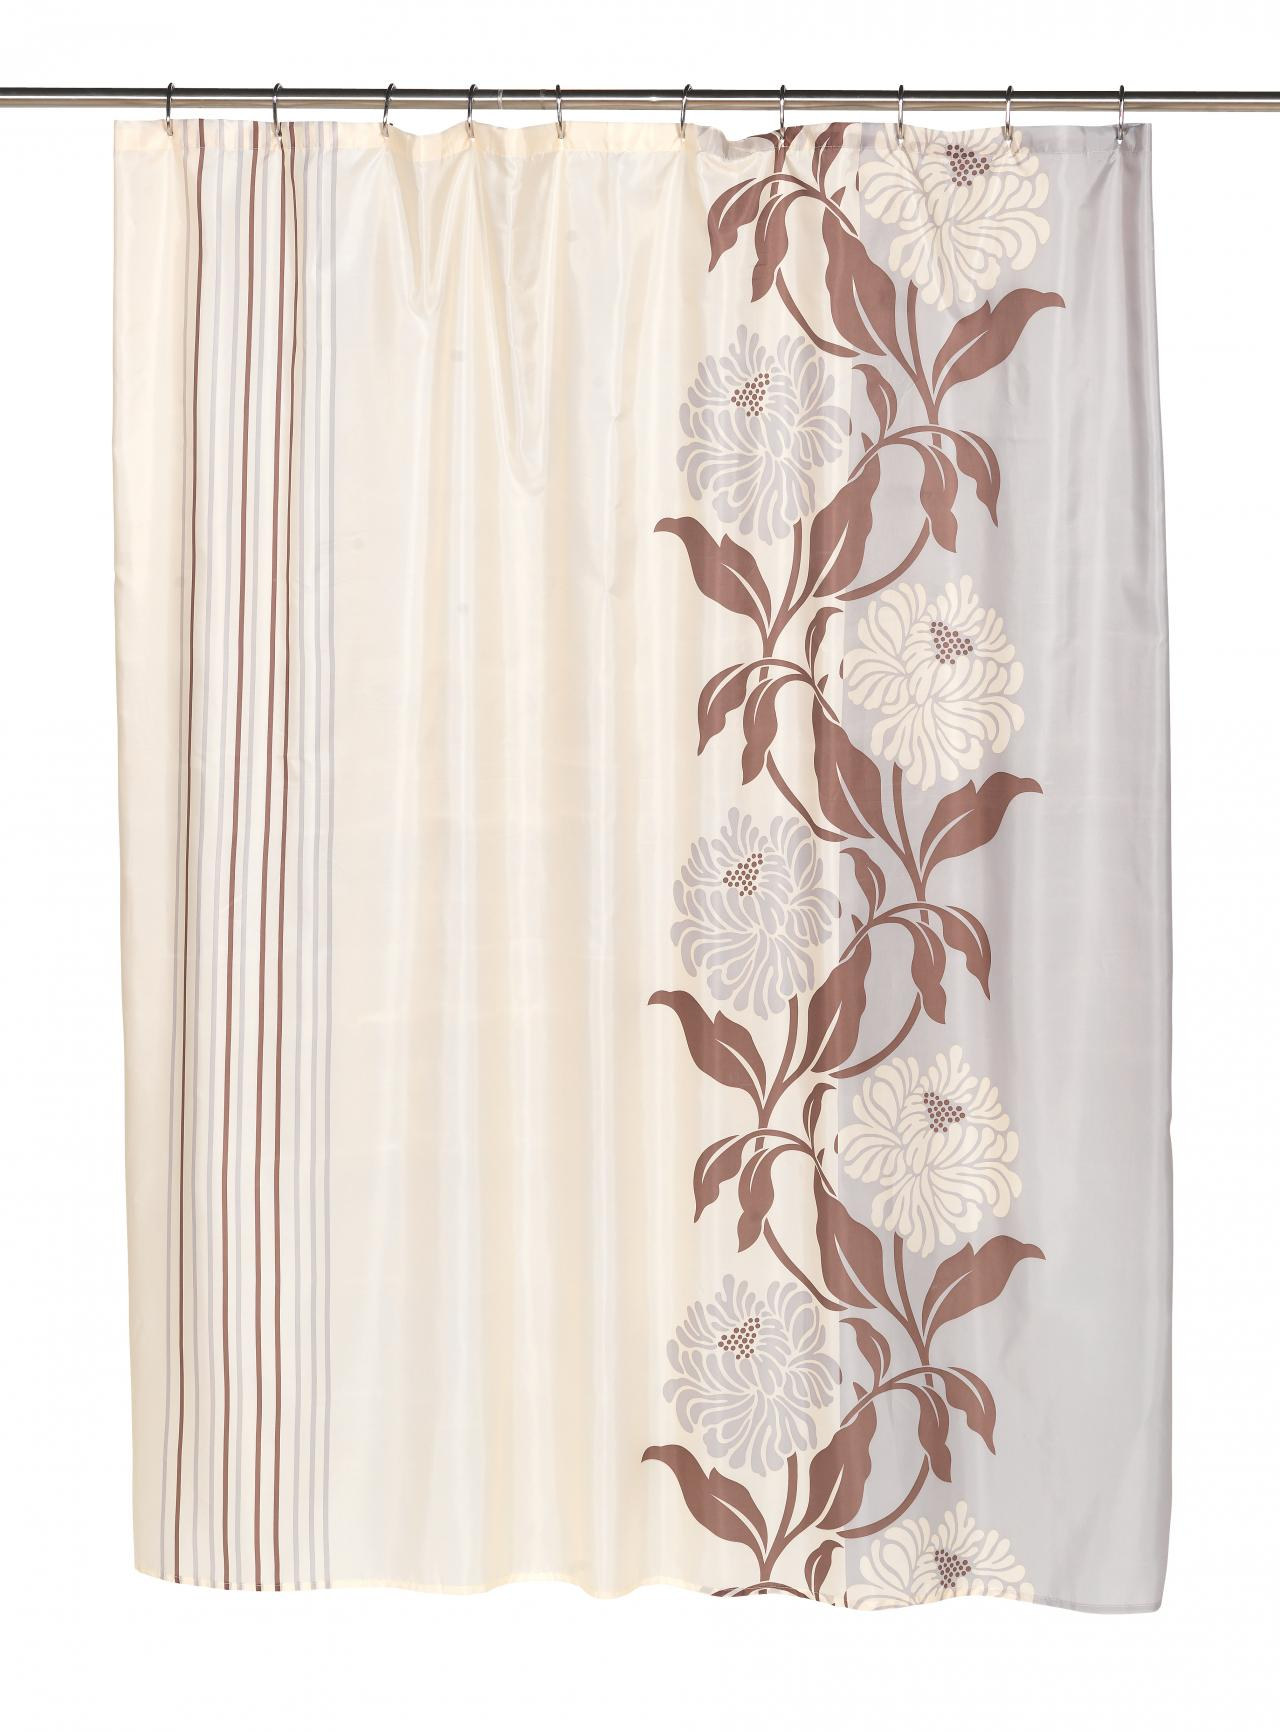 Carnation Home Fashions, Inc - Fabric Shower Curtains